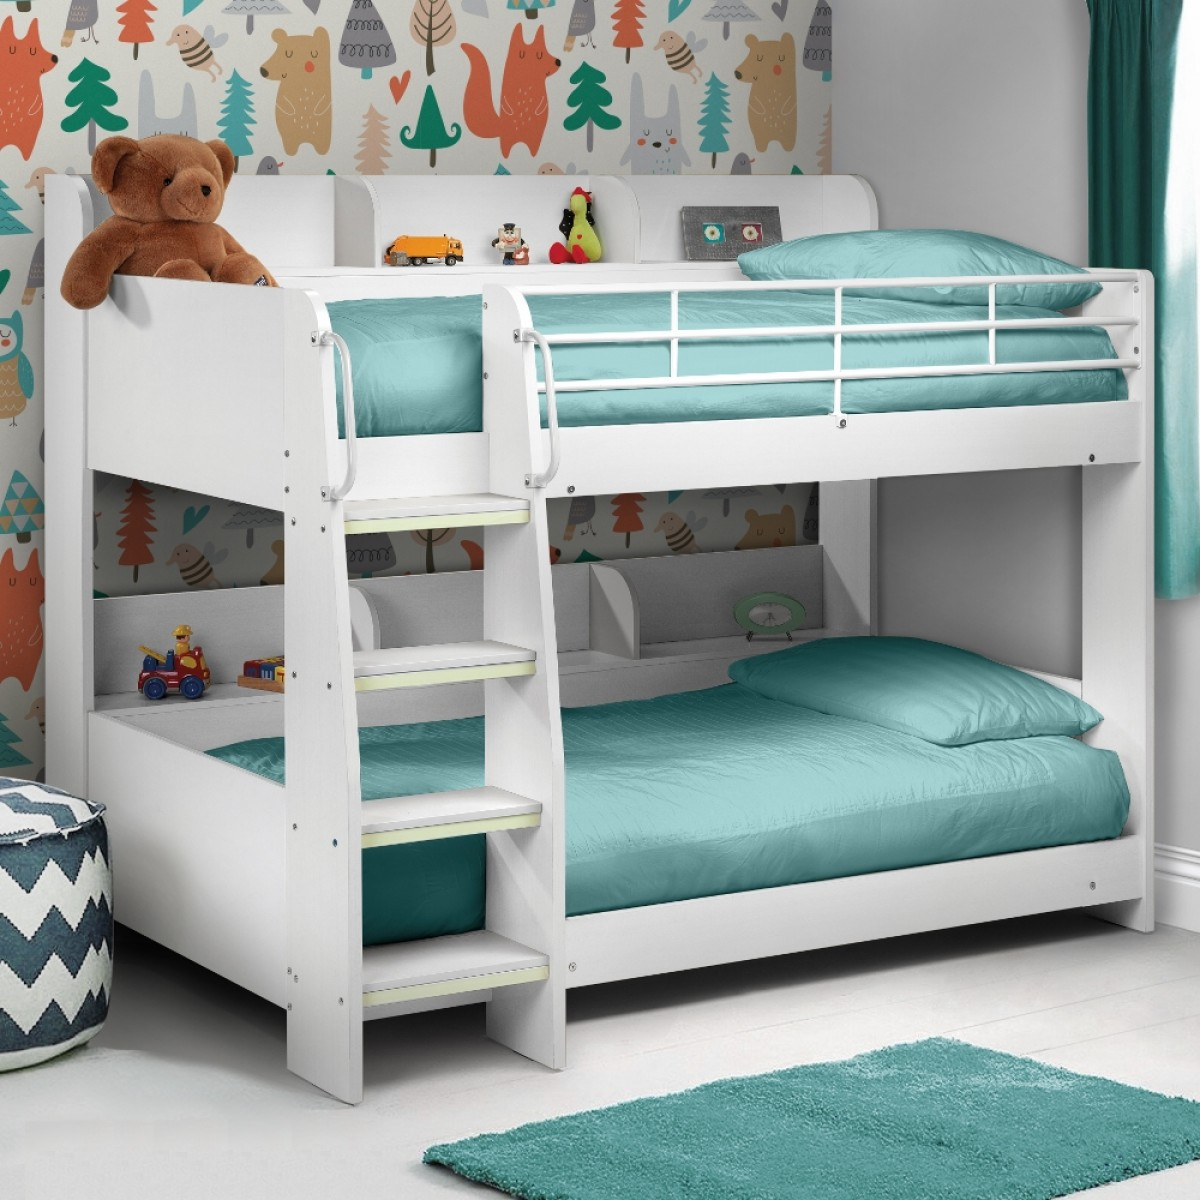 White Wooden Bunk Beds Julian Bowen Domino White Wooden Kids Bunk Bed